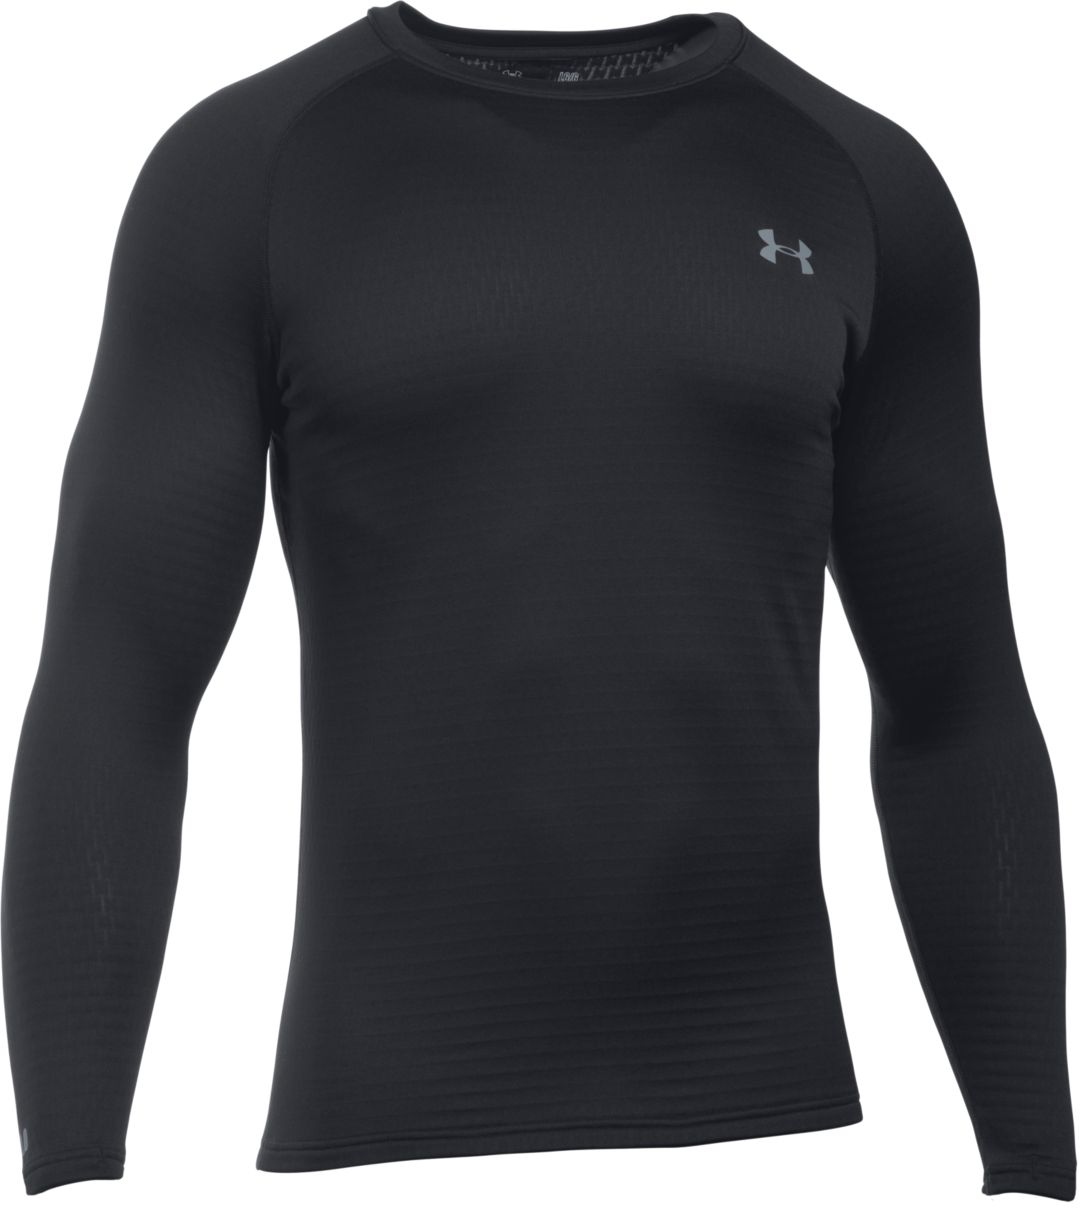 c21a0b75 Under Armour Men's 2.0 Crew Base Layer Shirt | DICK'S Sporting Goods